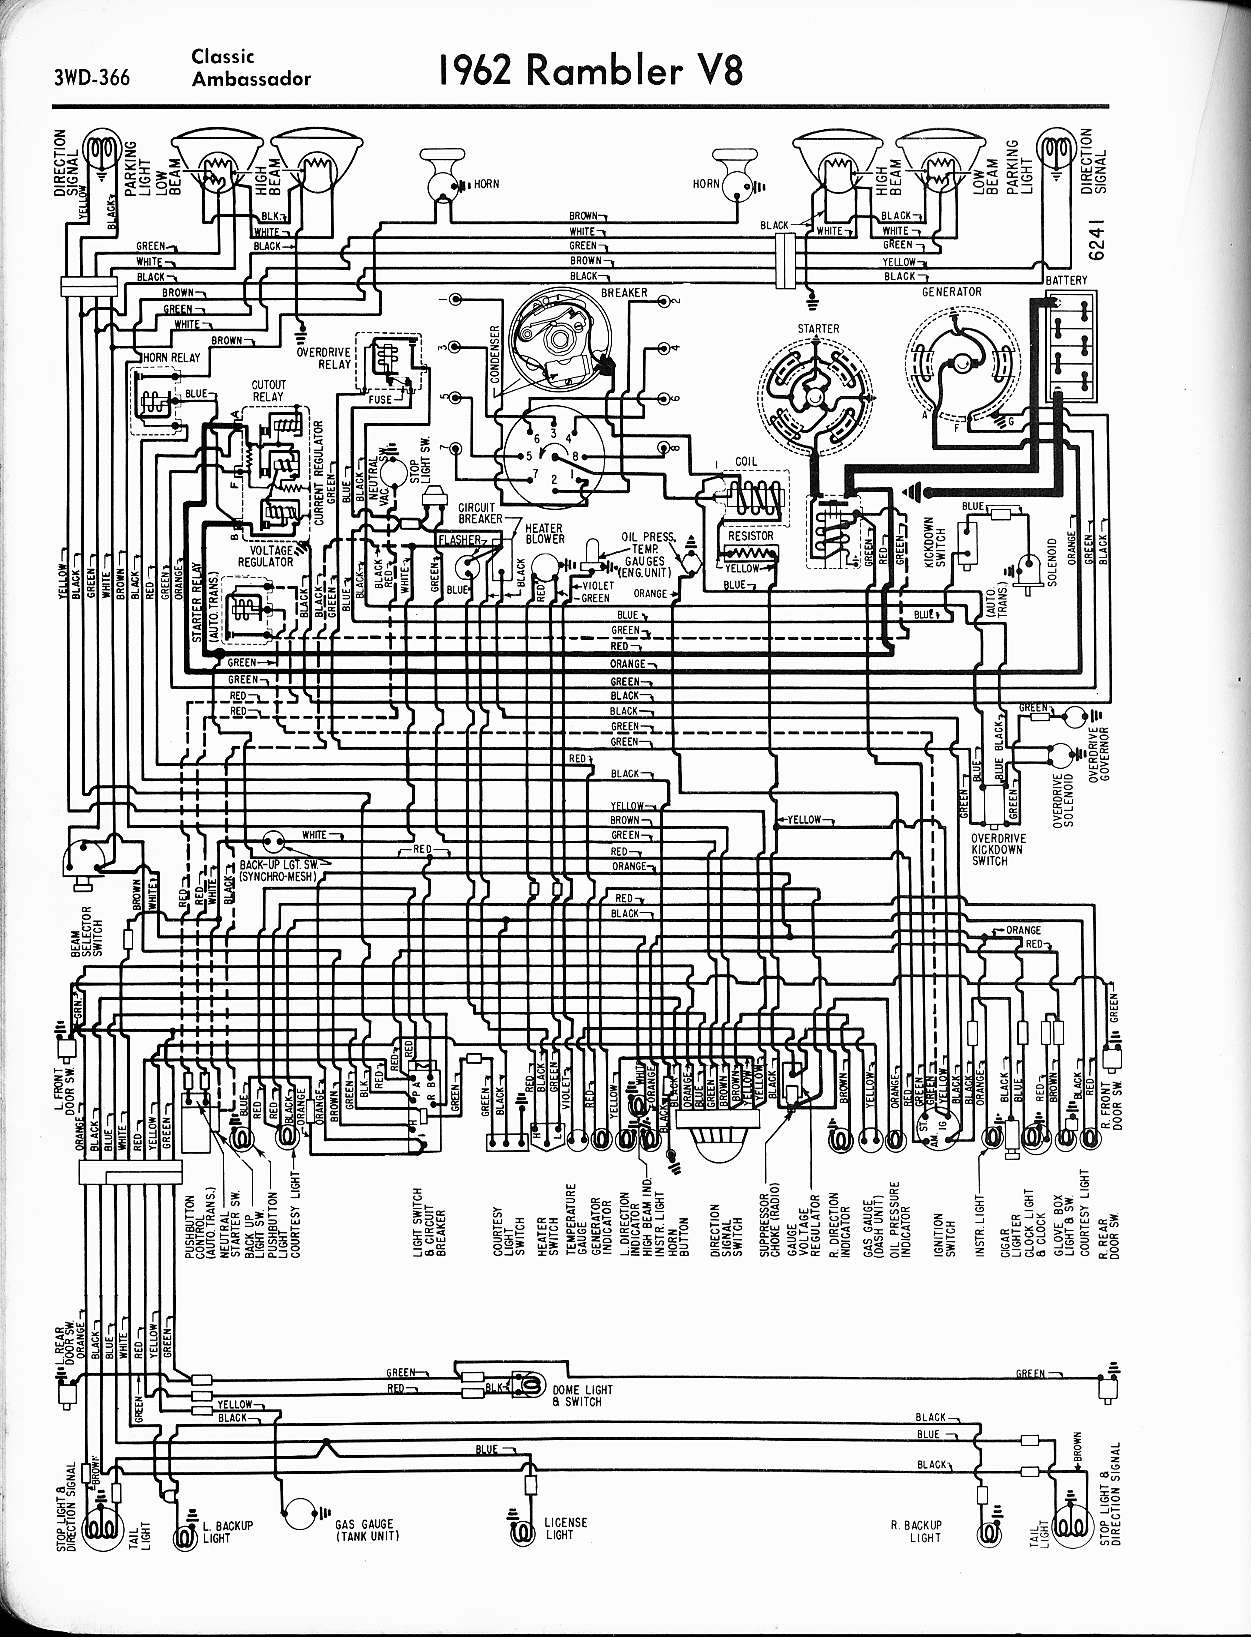 MWire5765 366 rambler wiring diagrams the old car manual project 1964 rambler fuse box diagram at readyjetset.co